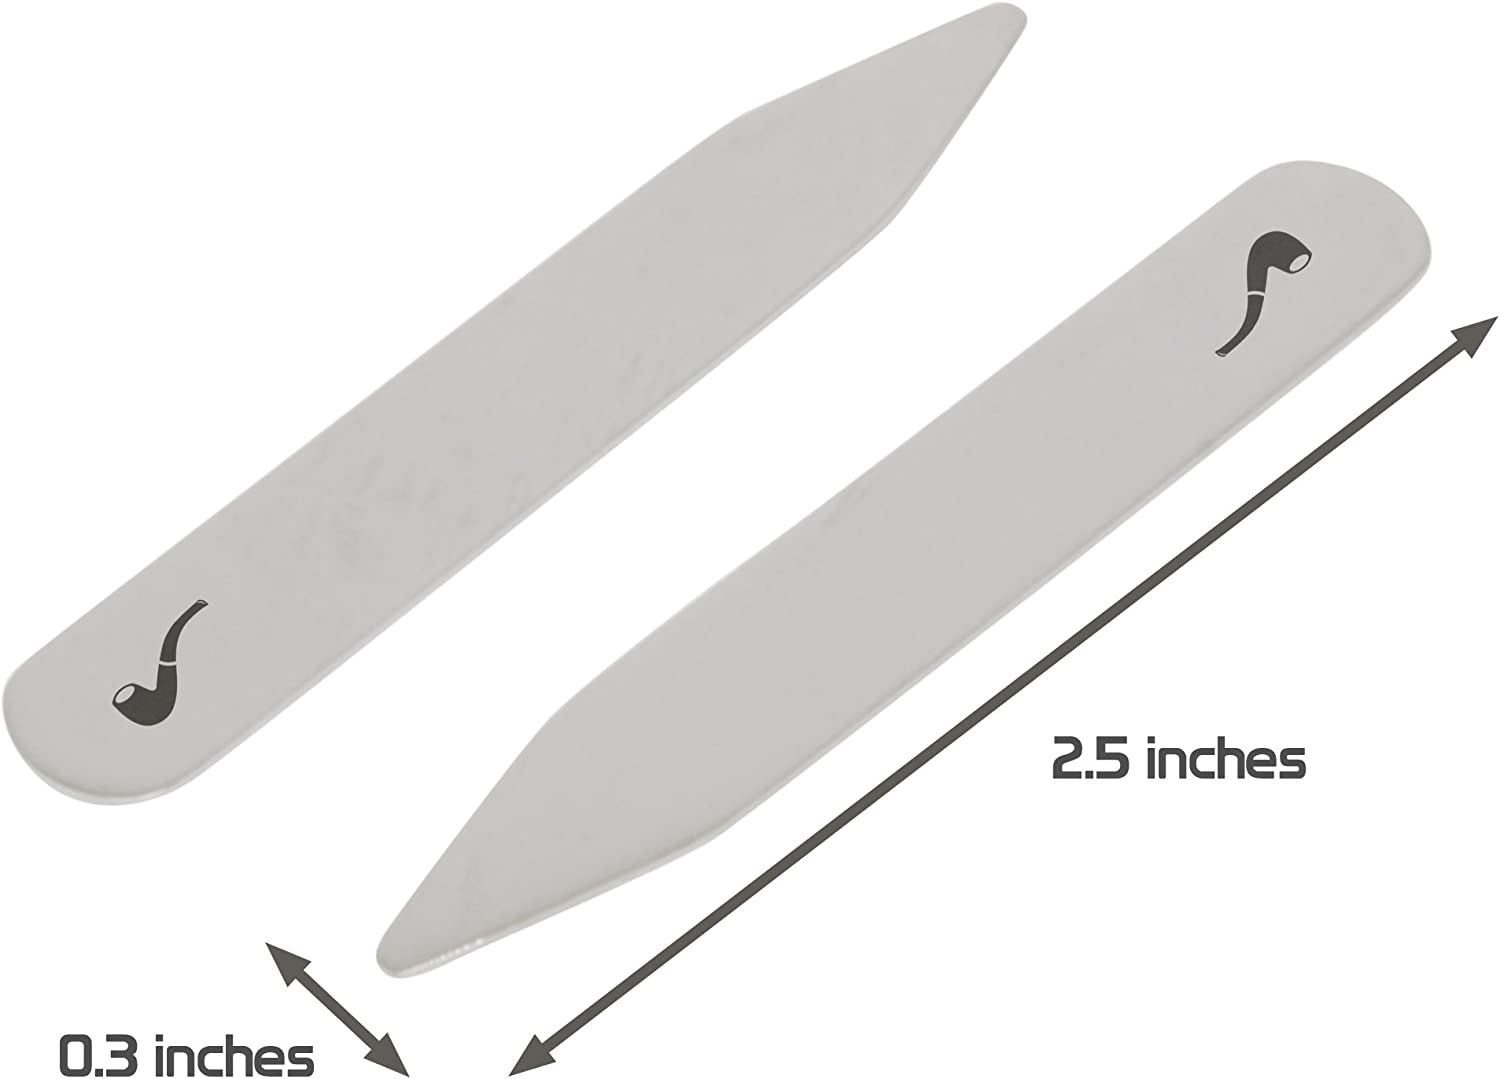 2.5 Inch Metal Collar Stiffeners MODERN GOODS SHOP Stainless Steel Collar Stays With Laser Engraved Pipe Design Made In USA